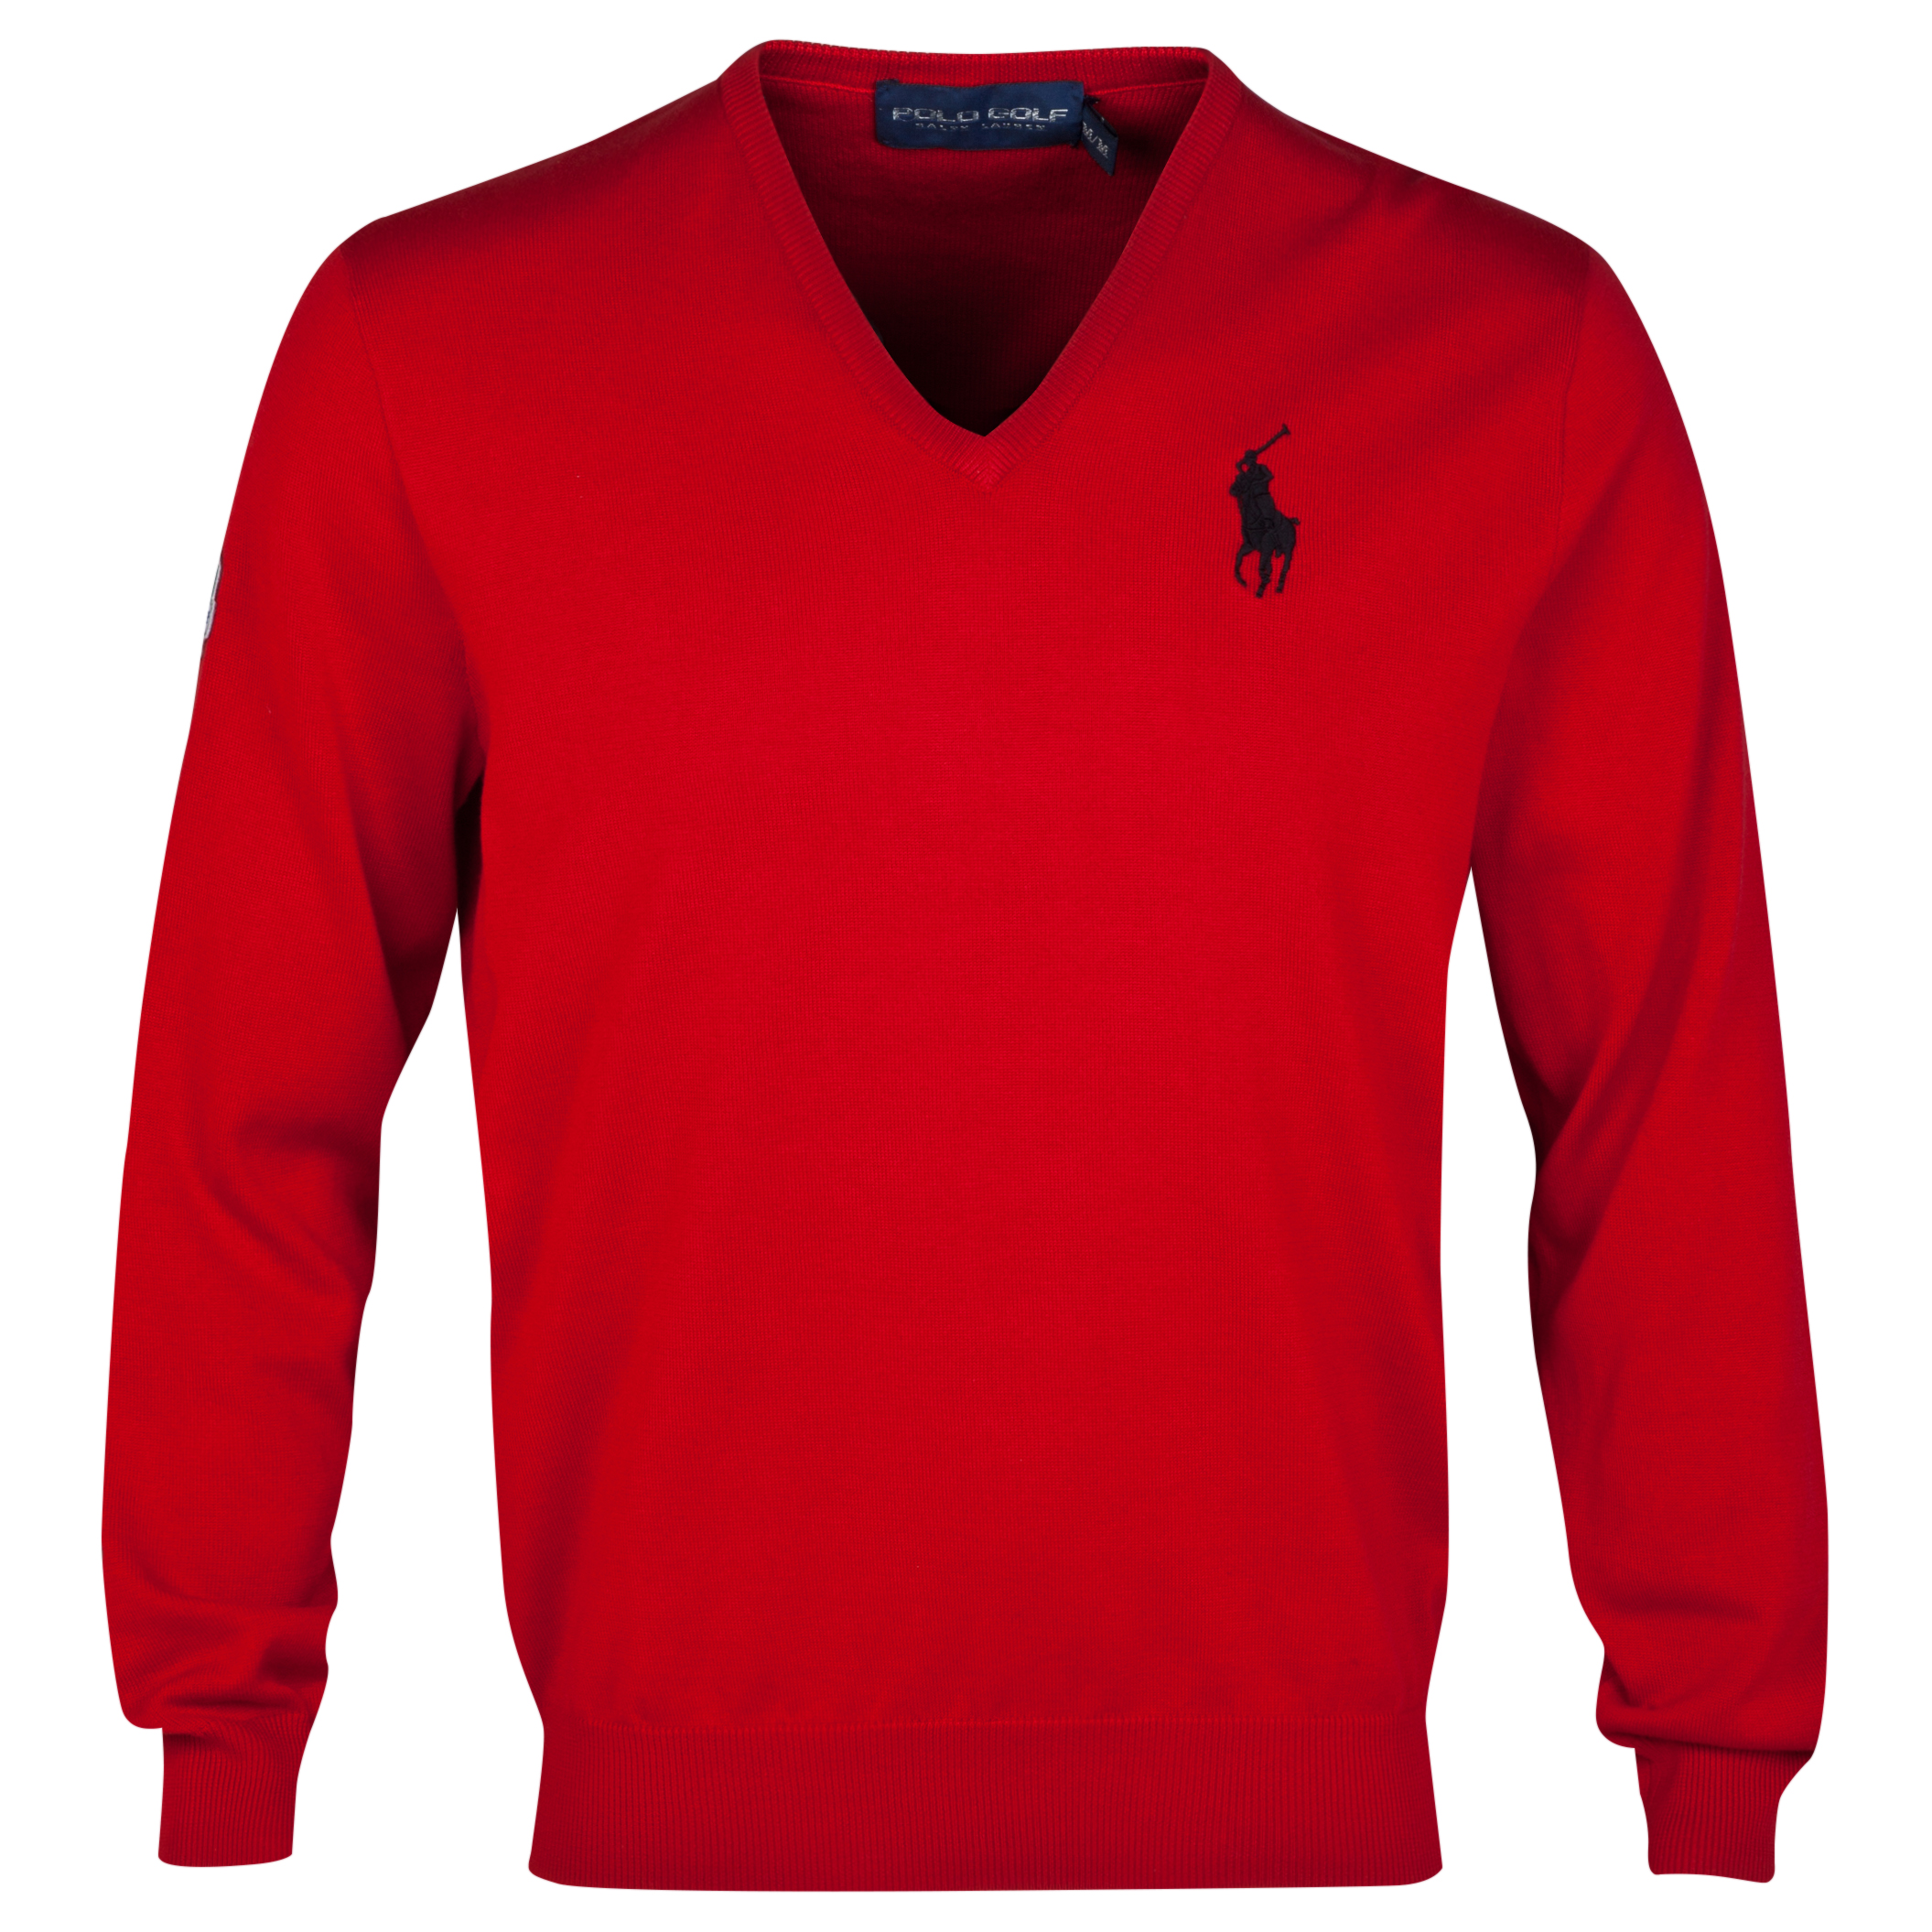 The 2014 Ryder Cup Ralph Lauren Big Pony V-Neck Sweater Red